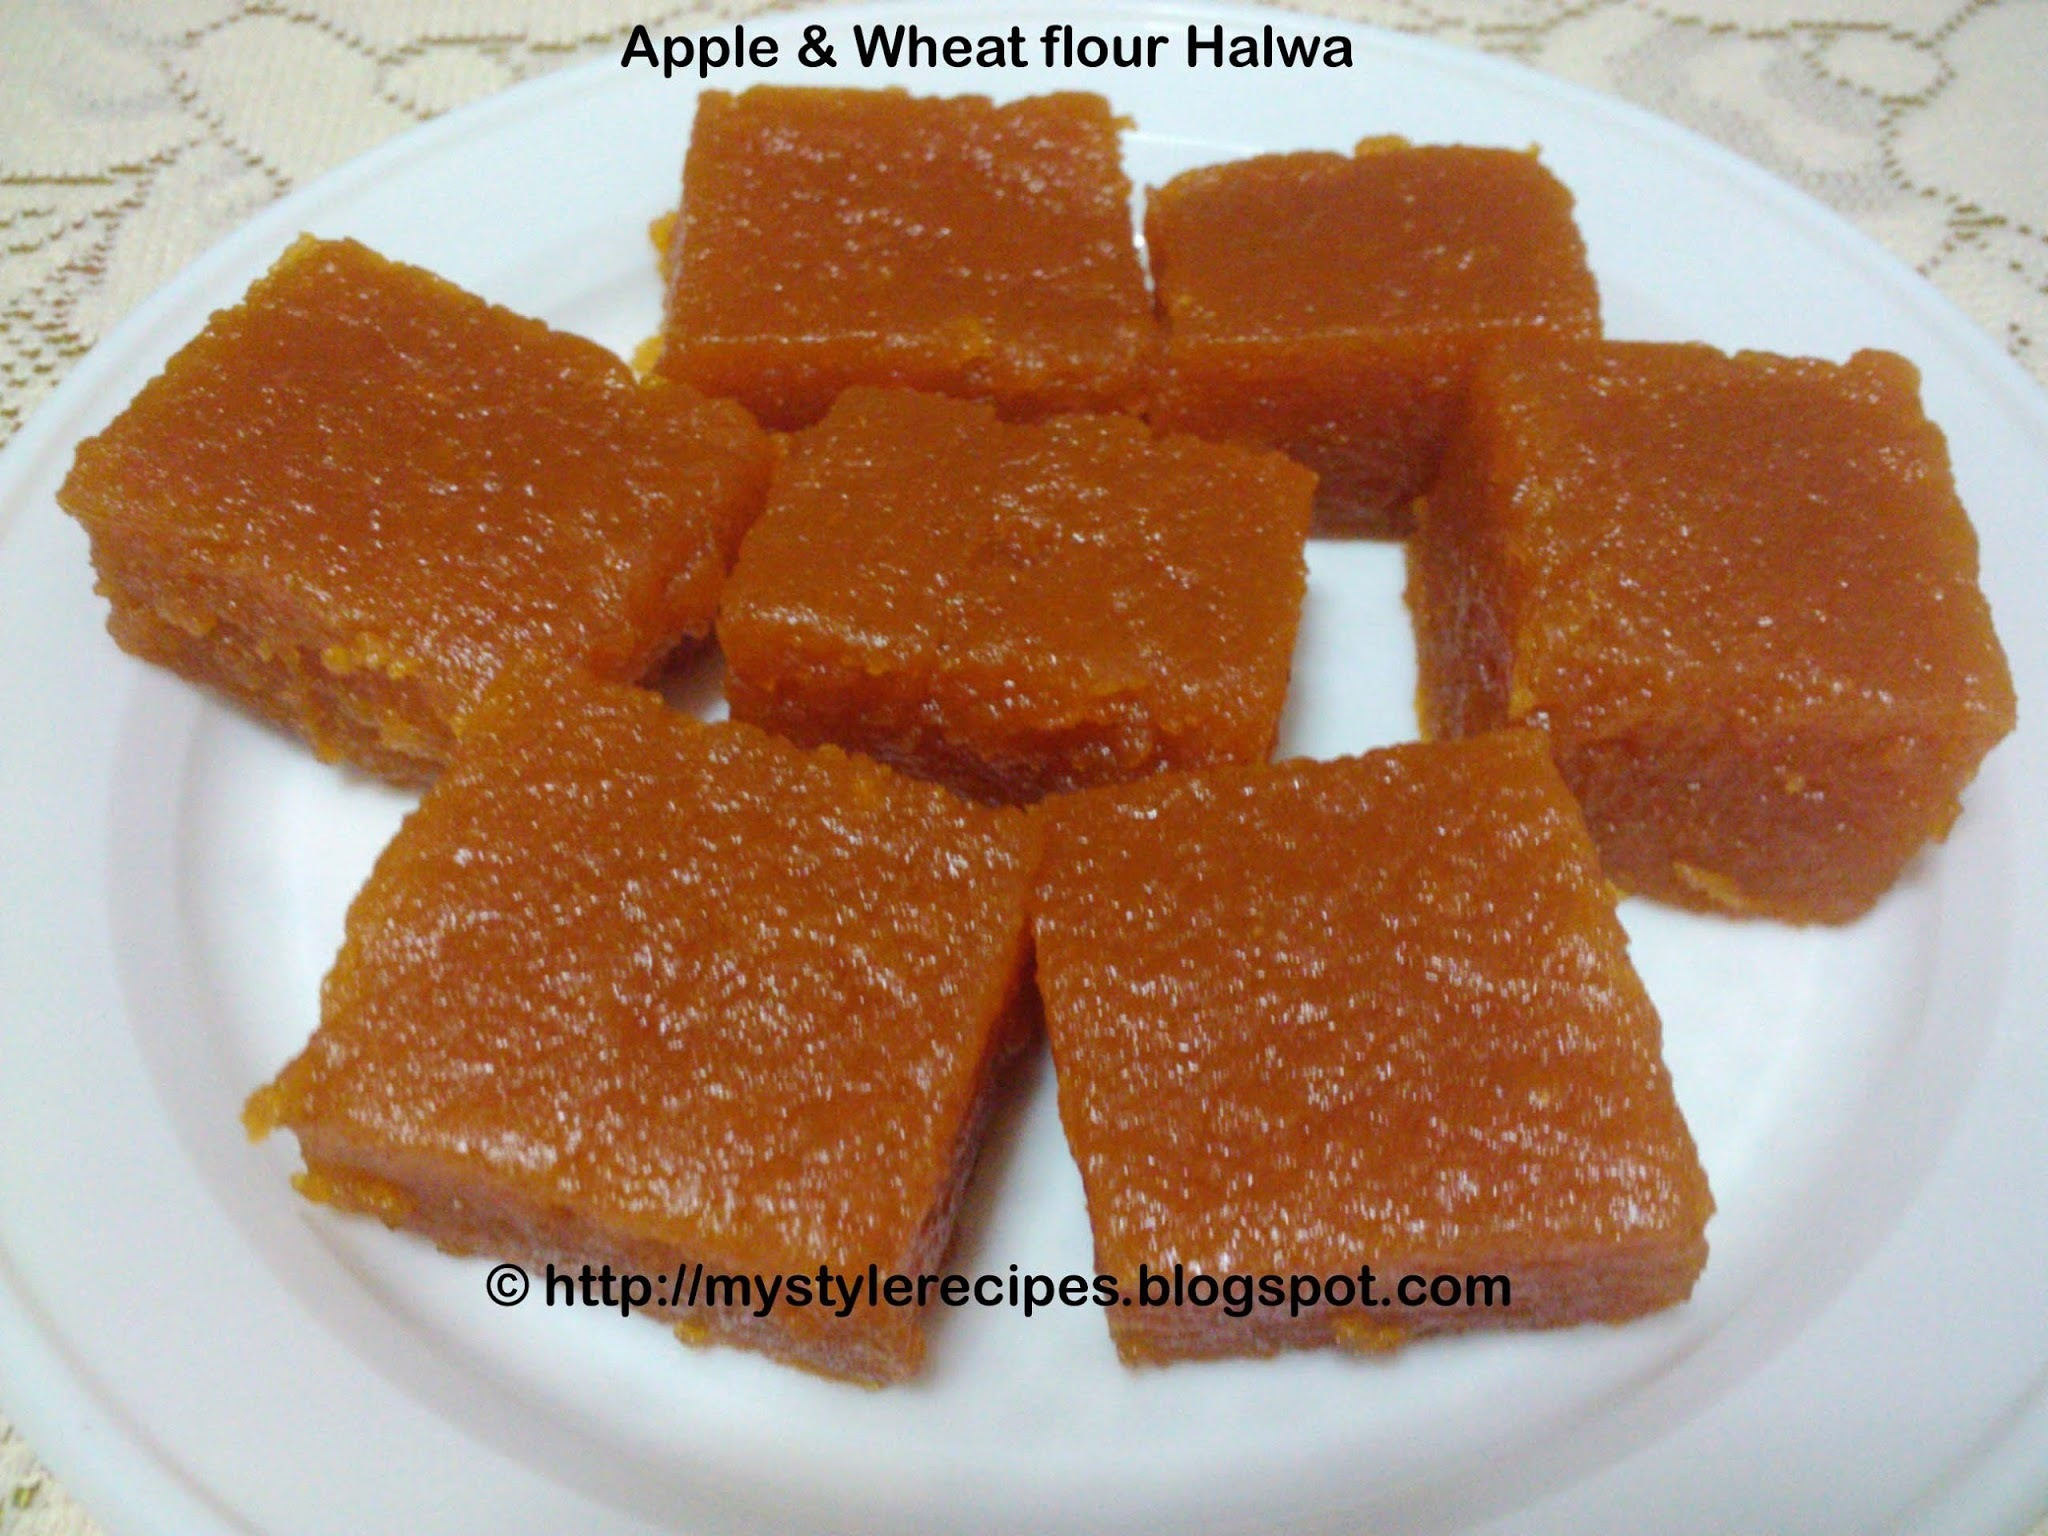 Apple and Wheat flour Halwa/Indian Sweet